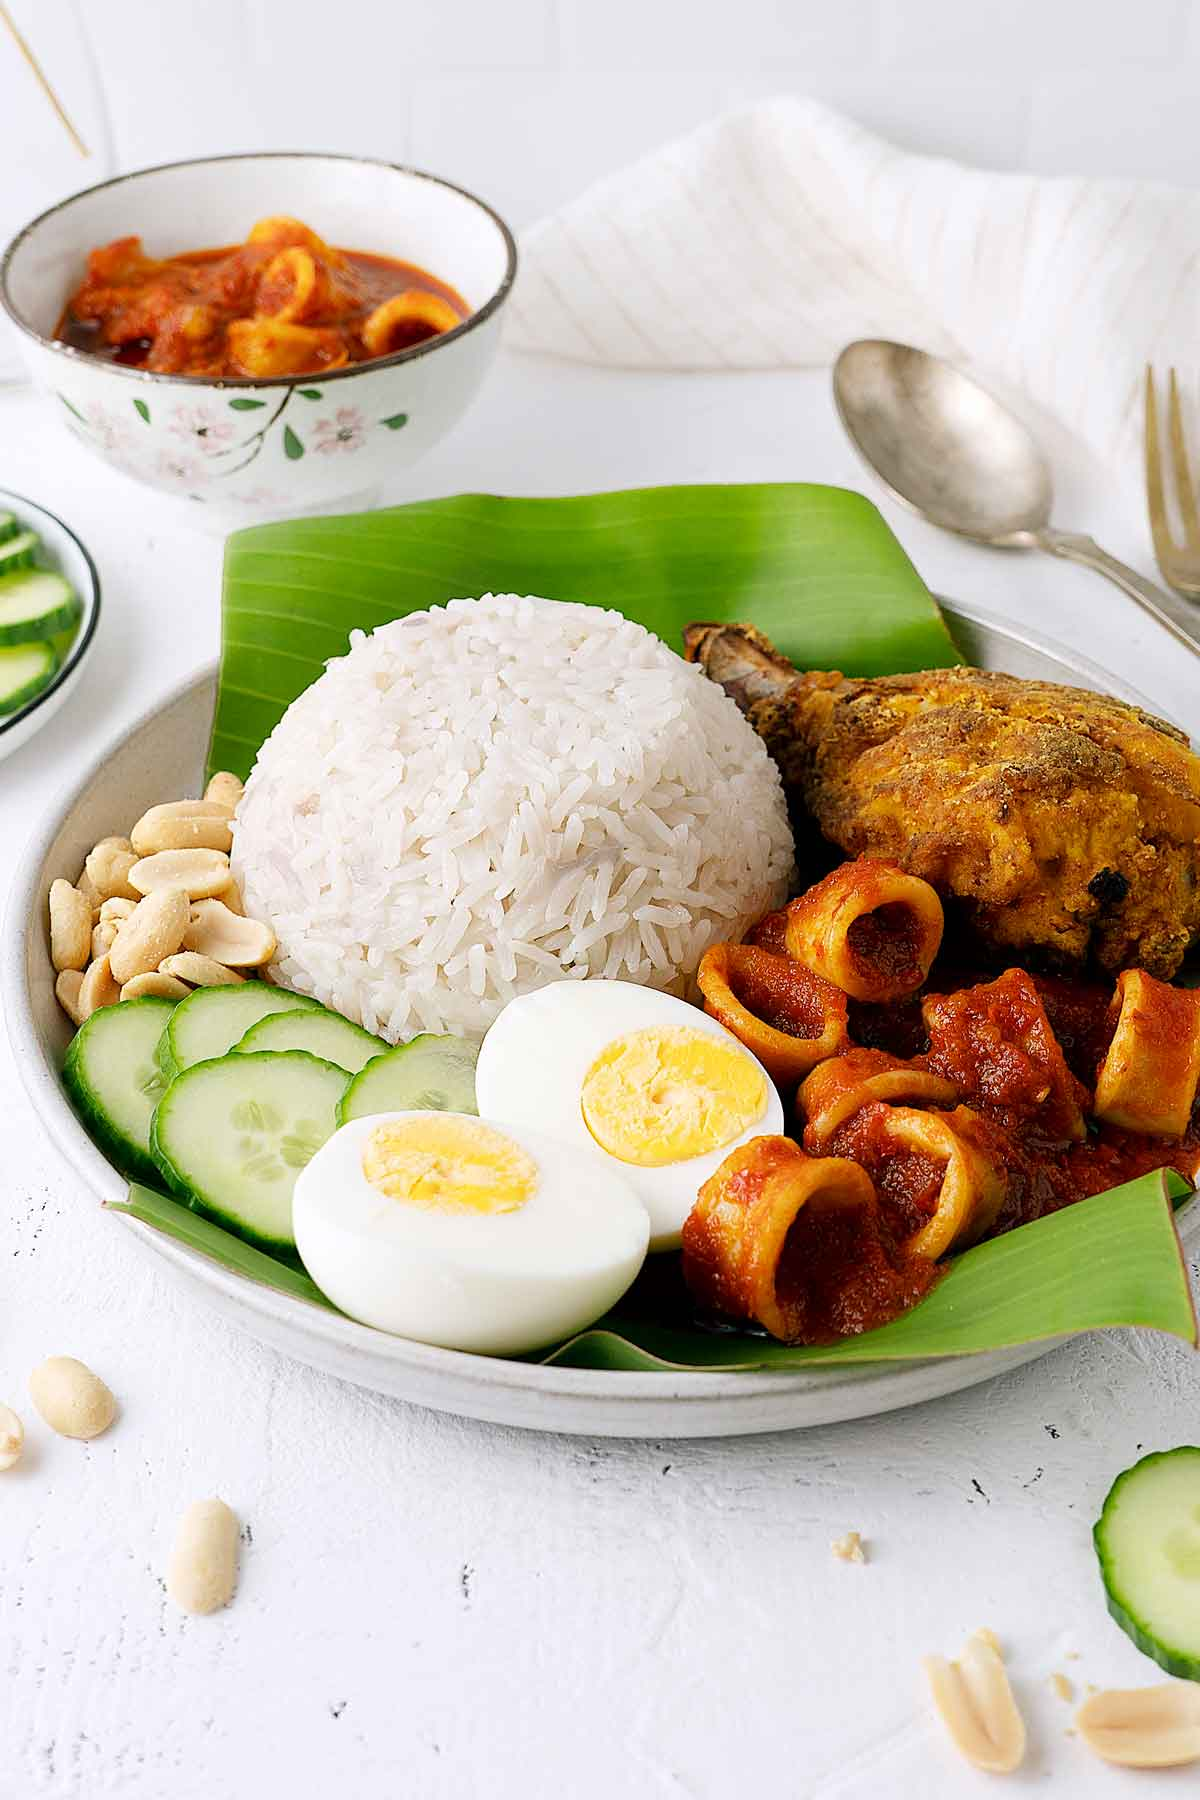 Nasi lemak in a plate with all its trimmings view from front